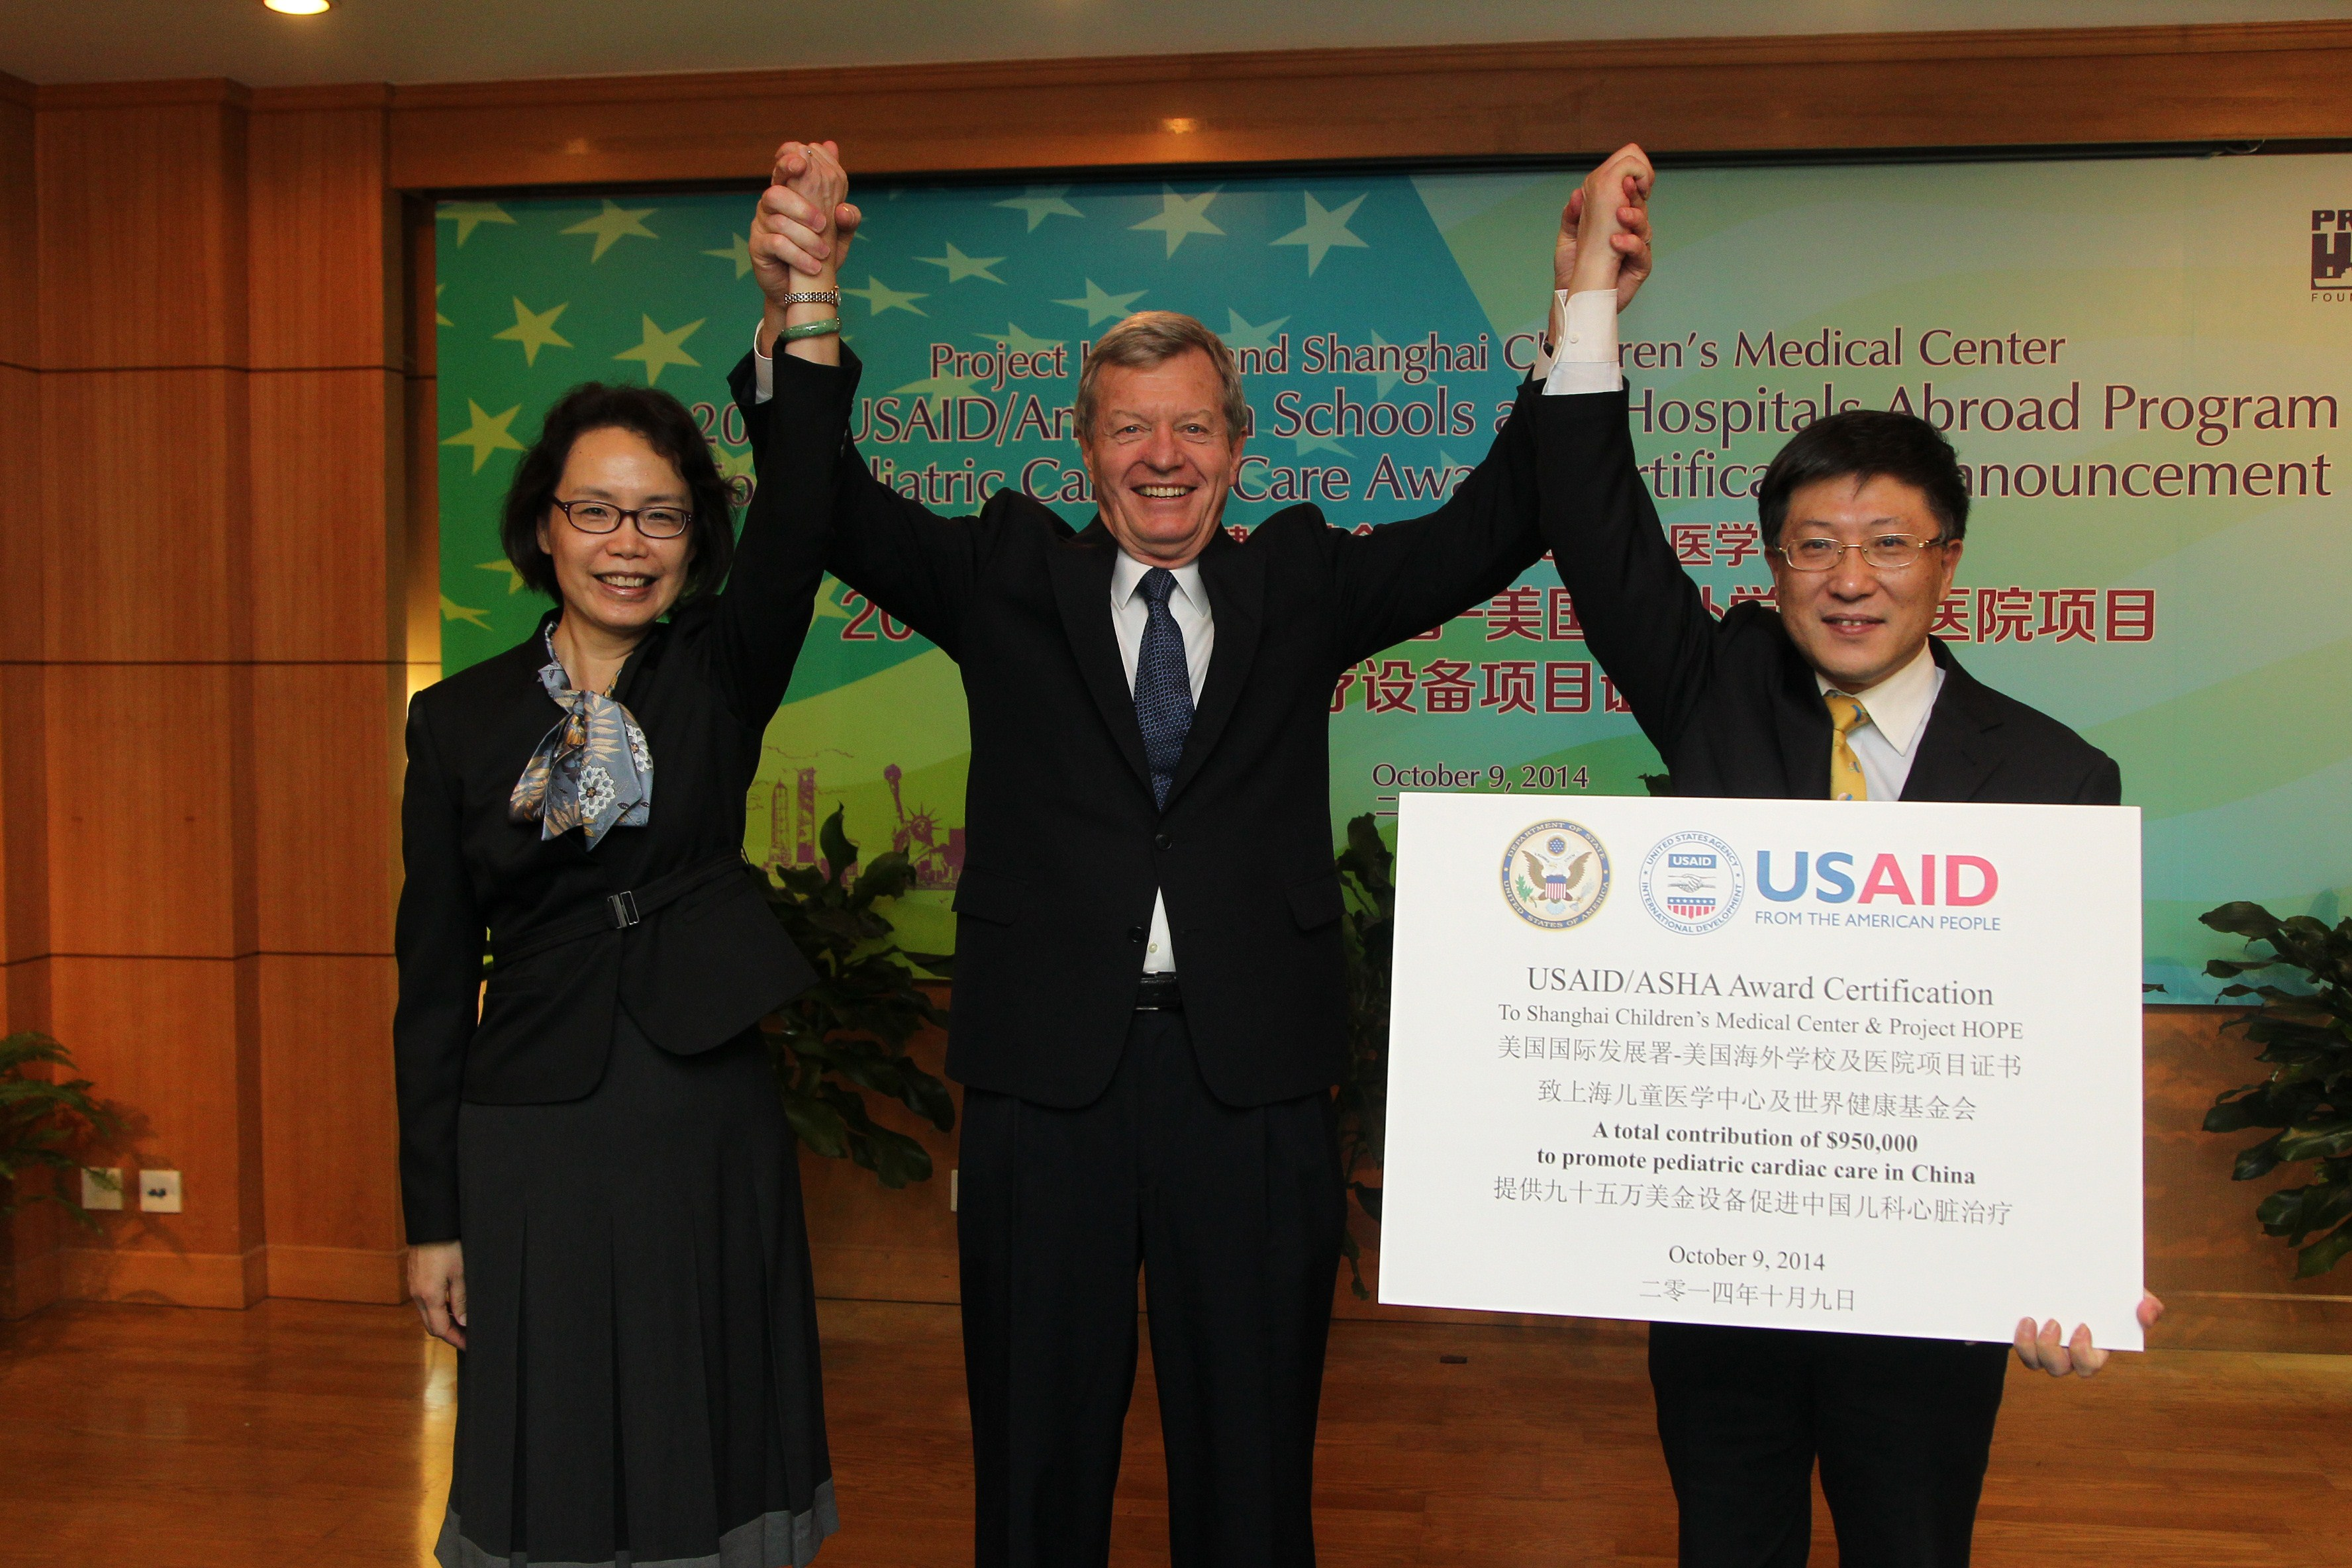 United States Ambassador to China Max Baucus (center) poses with Lily Hsu, program director of Project HOPE and Jiang Zhongyi, director of the Shanghai Children's Medical Center, yesterday after Baucus presented a USAID donation of US$950,000 for pediatric cardiac care. — Dong Jun